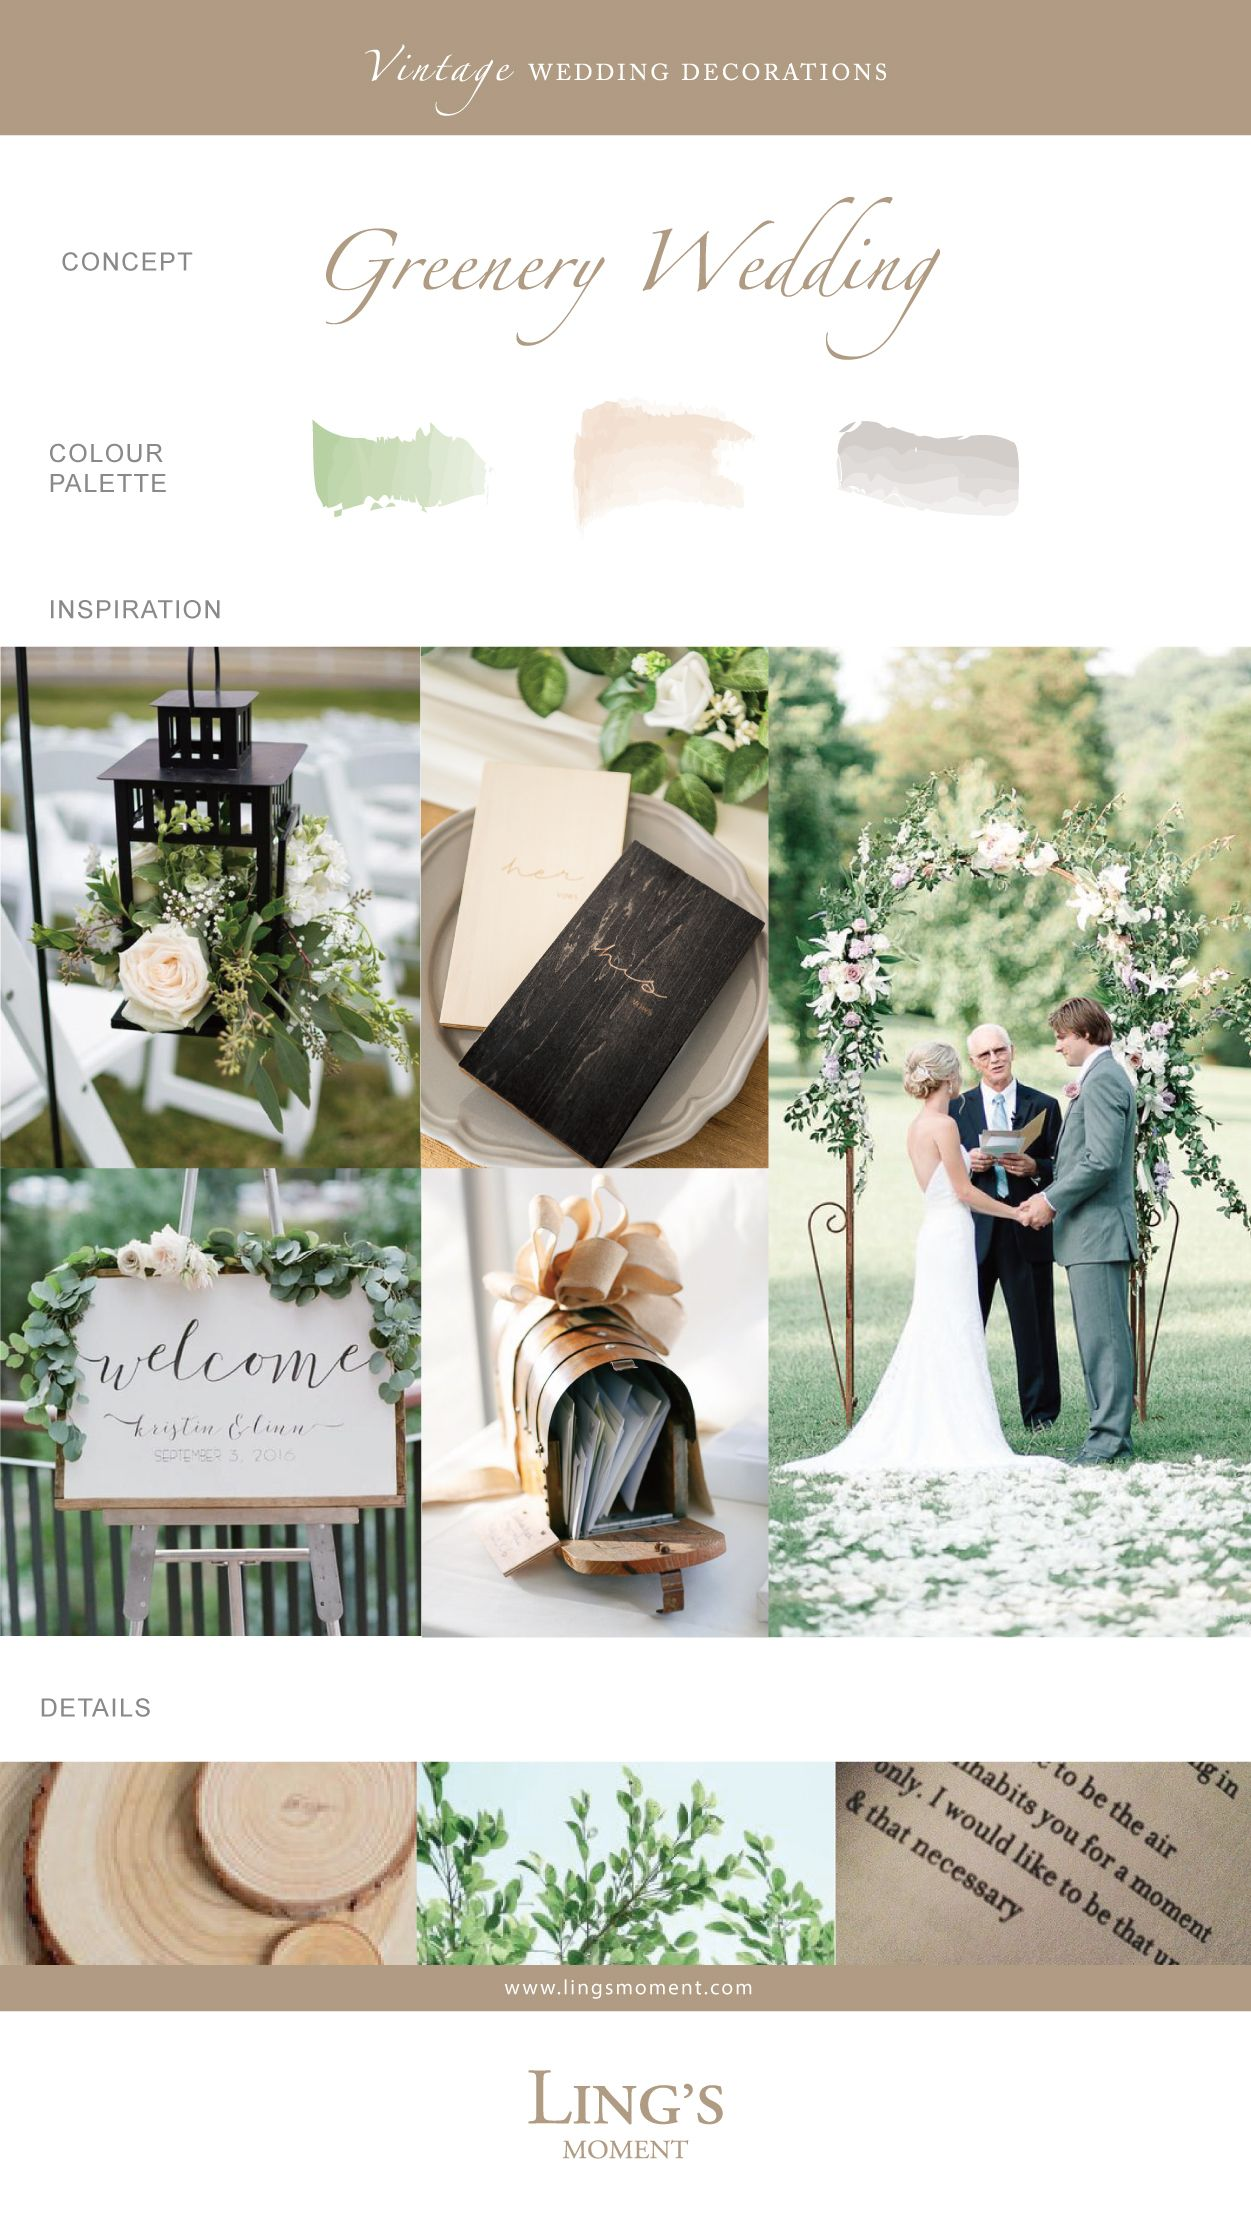 A Beautiful Alternative For Your Vows Vintage Handcrafted Wedding Book